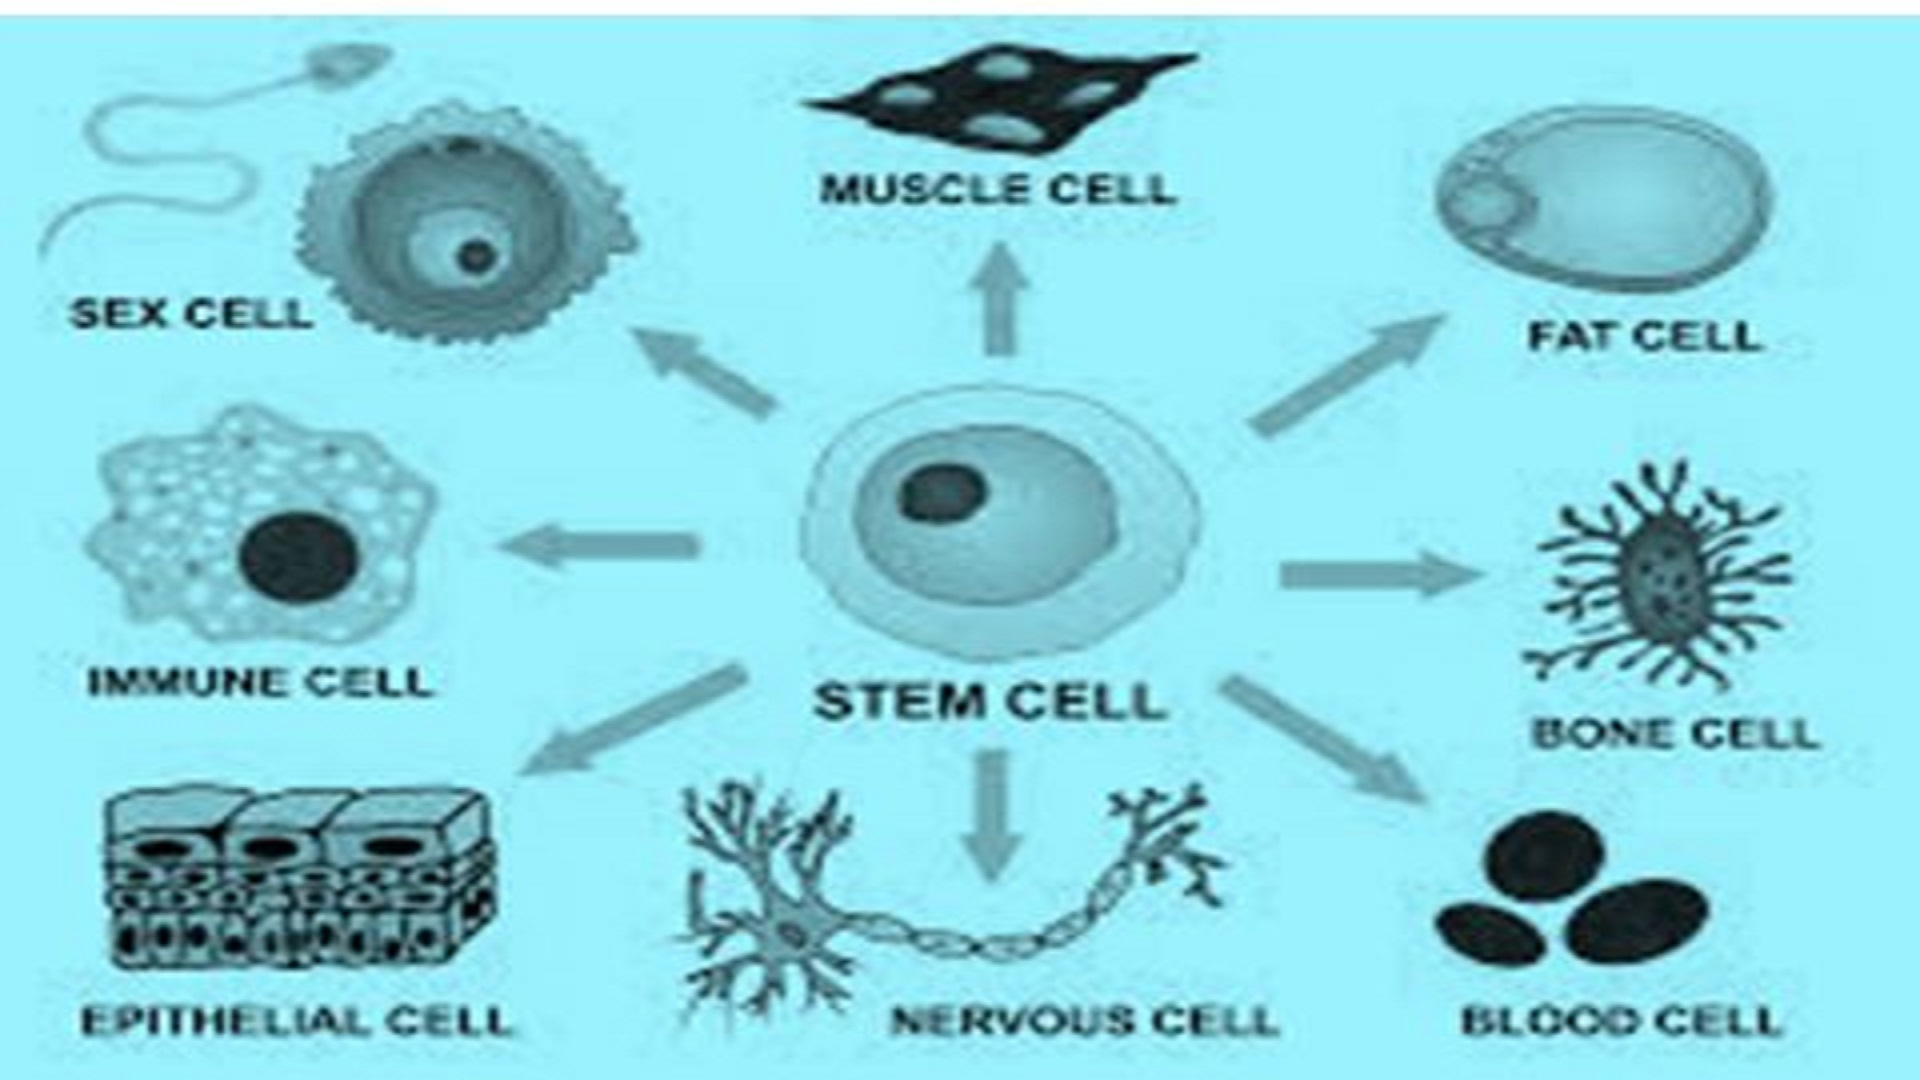 Intelligence of Human Cells Can Tell Us What Happens To the Body of a Human